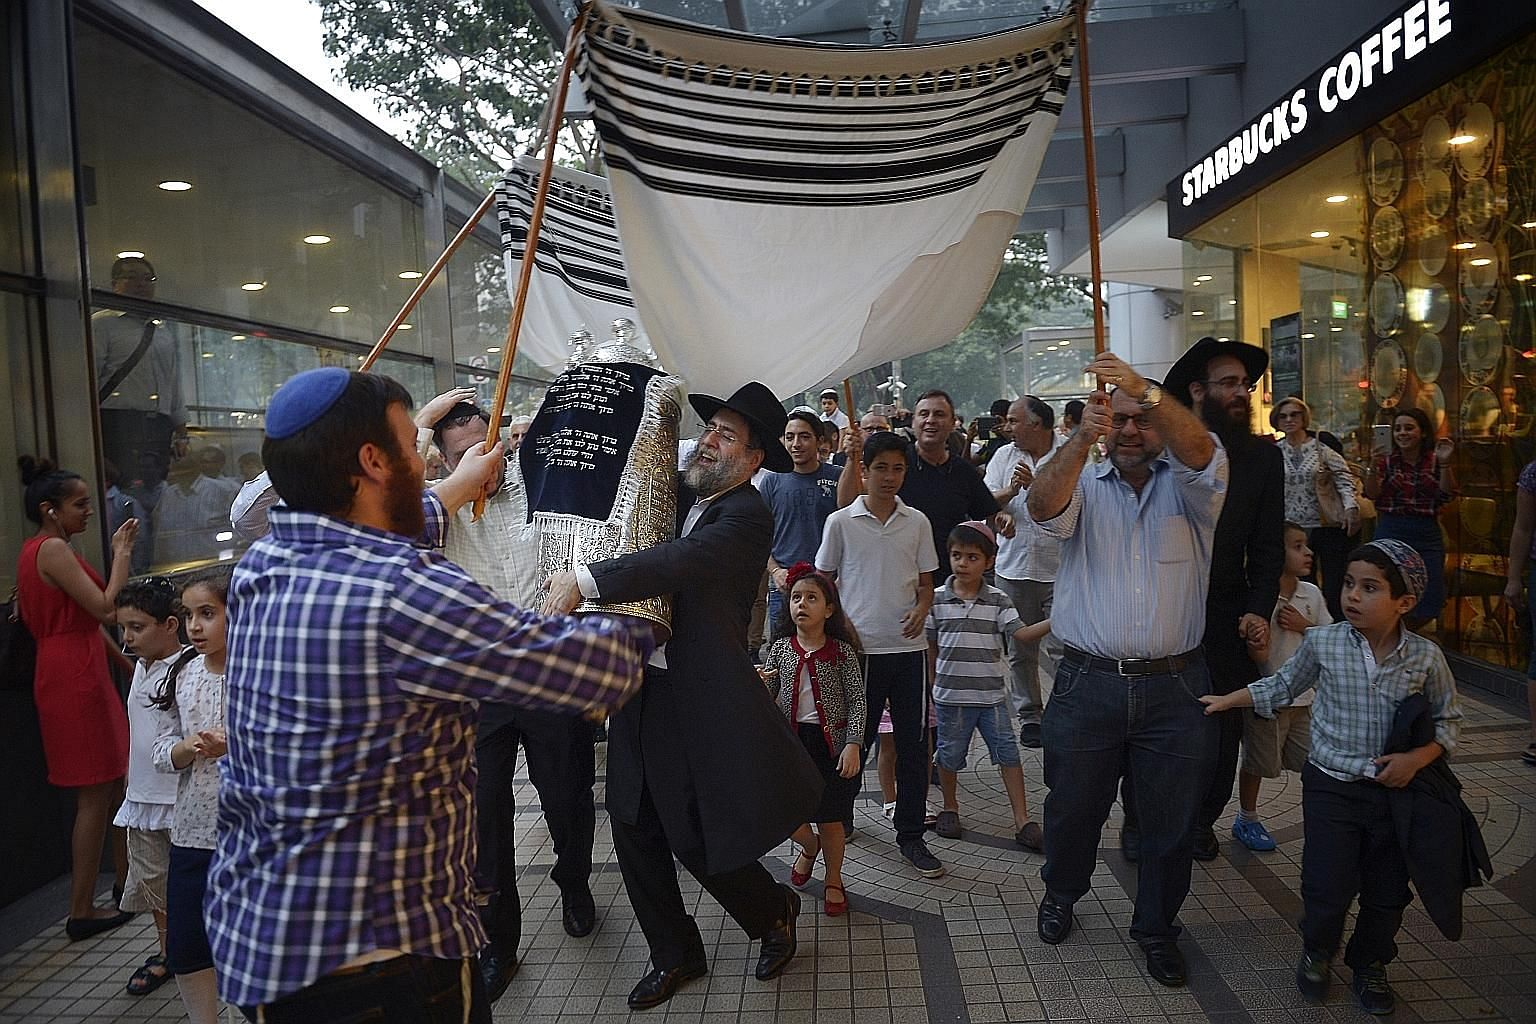 Rabbi Abergel holds a newly completed set of Torah as he and other members of the Jewish community celebrate on the streets outside the Maghain Aboth Synagogue. The joyous event usually concludes with a festive meal.